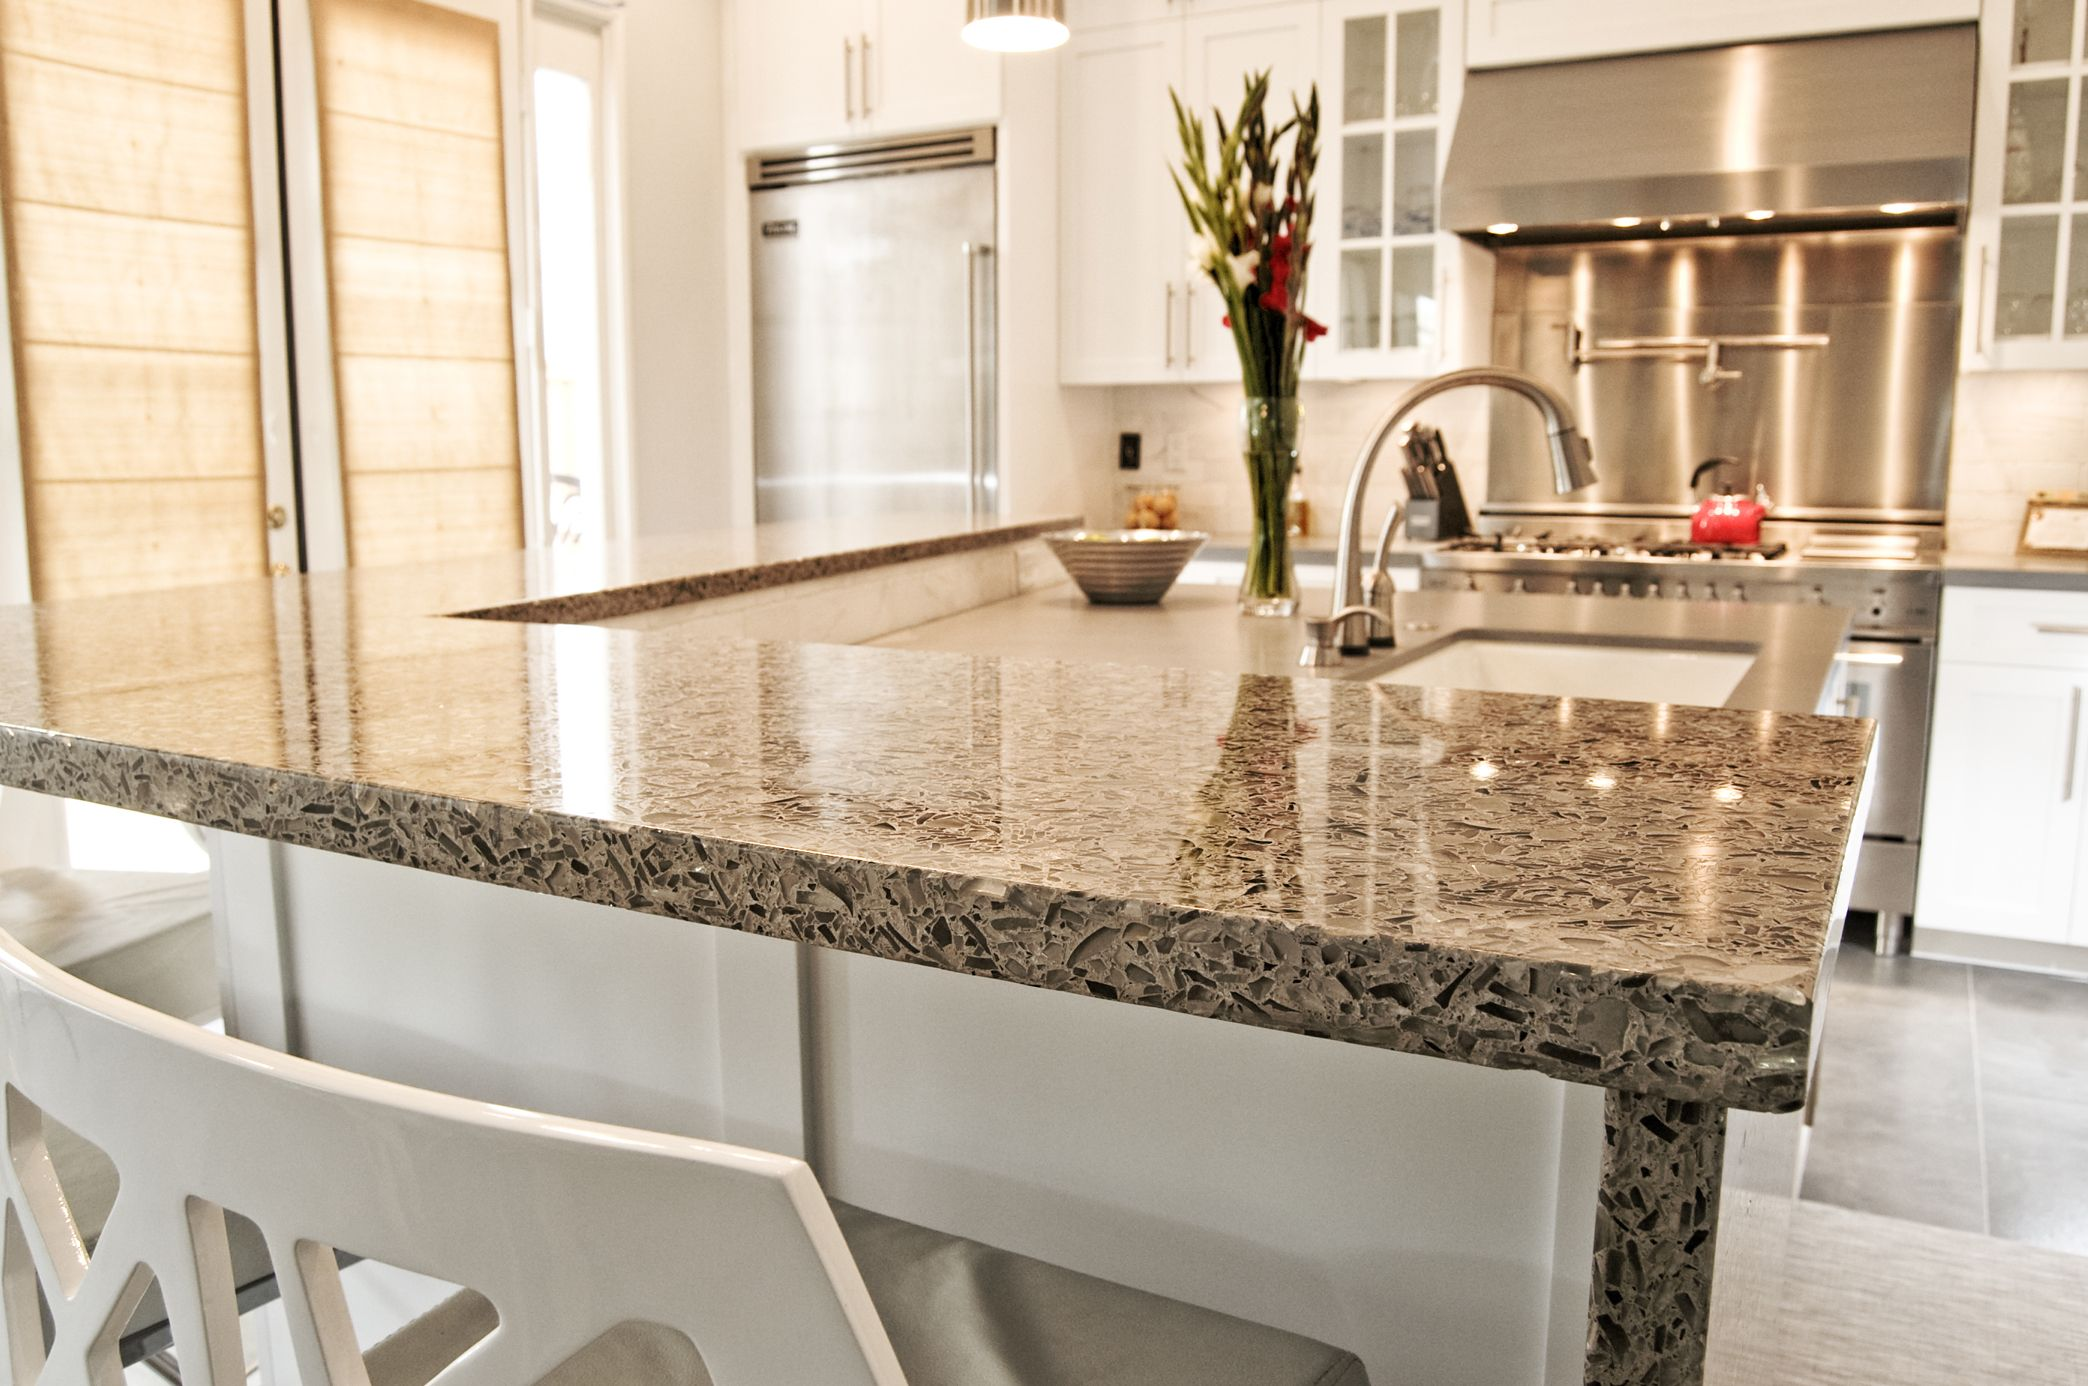 12 Best Vetrazzo Installation Images On Pinterest Recycled Gl Beer Bottle Concrete Counter Tops